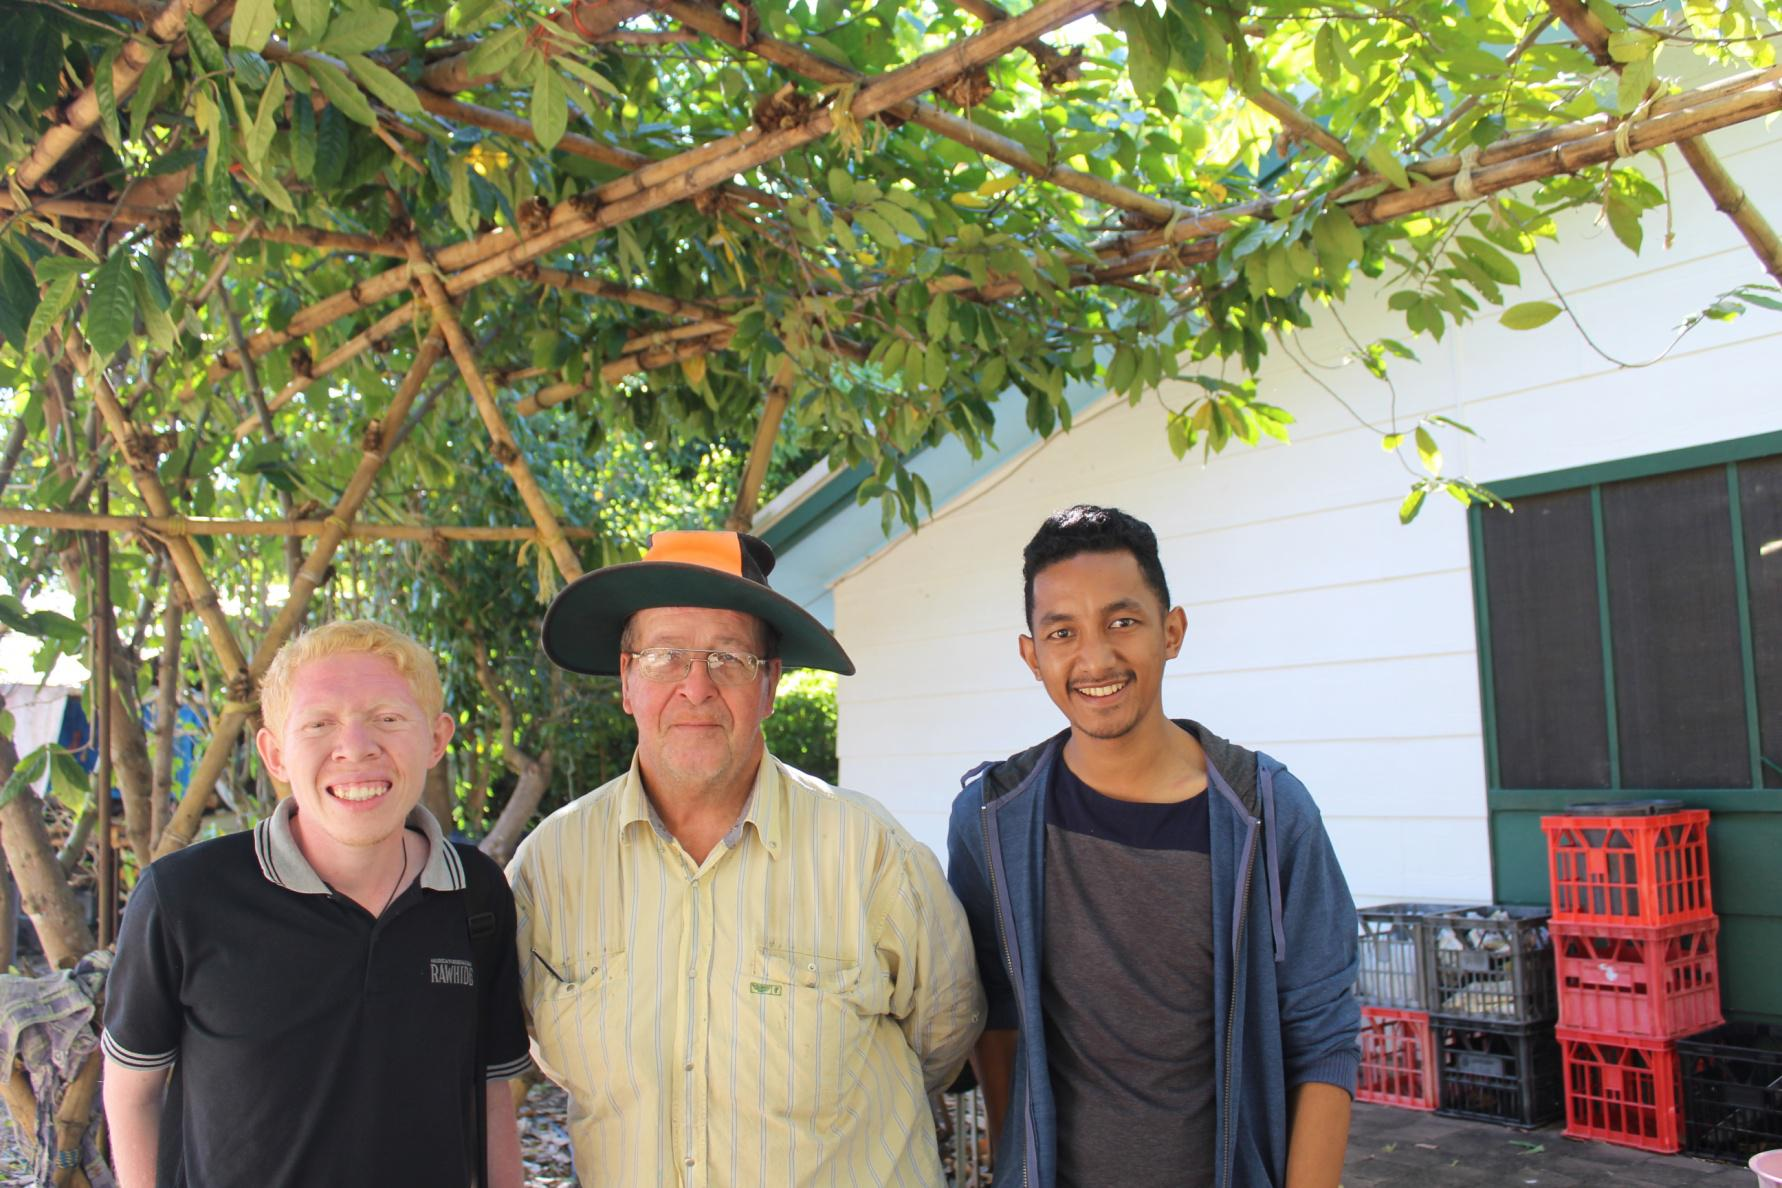 Taking picture with Pak Peter Bekkers, he is the owner farm that we attended.